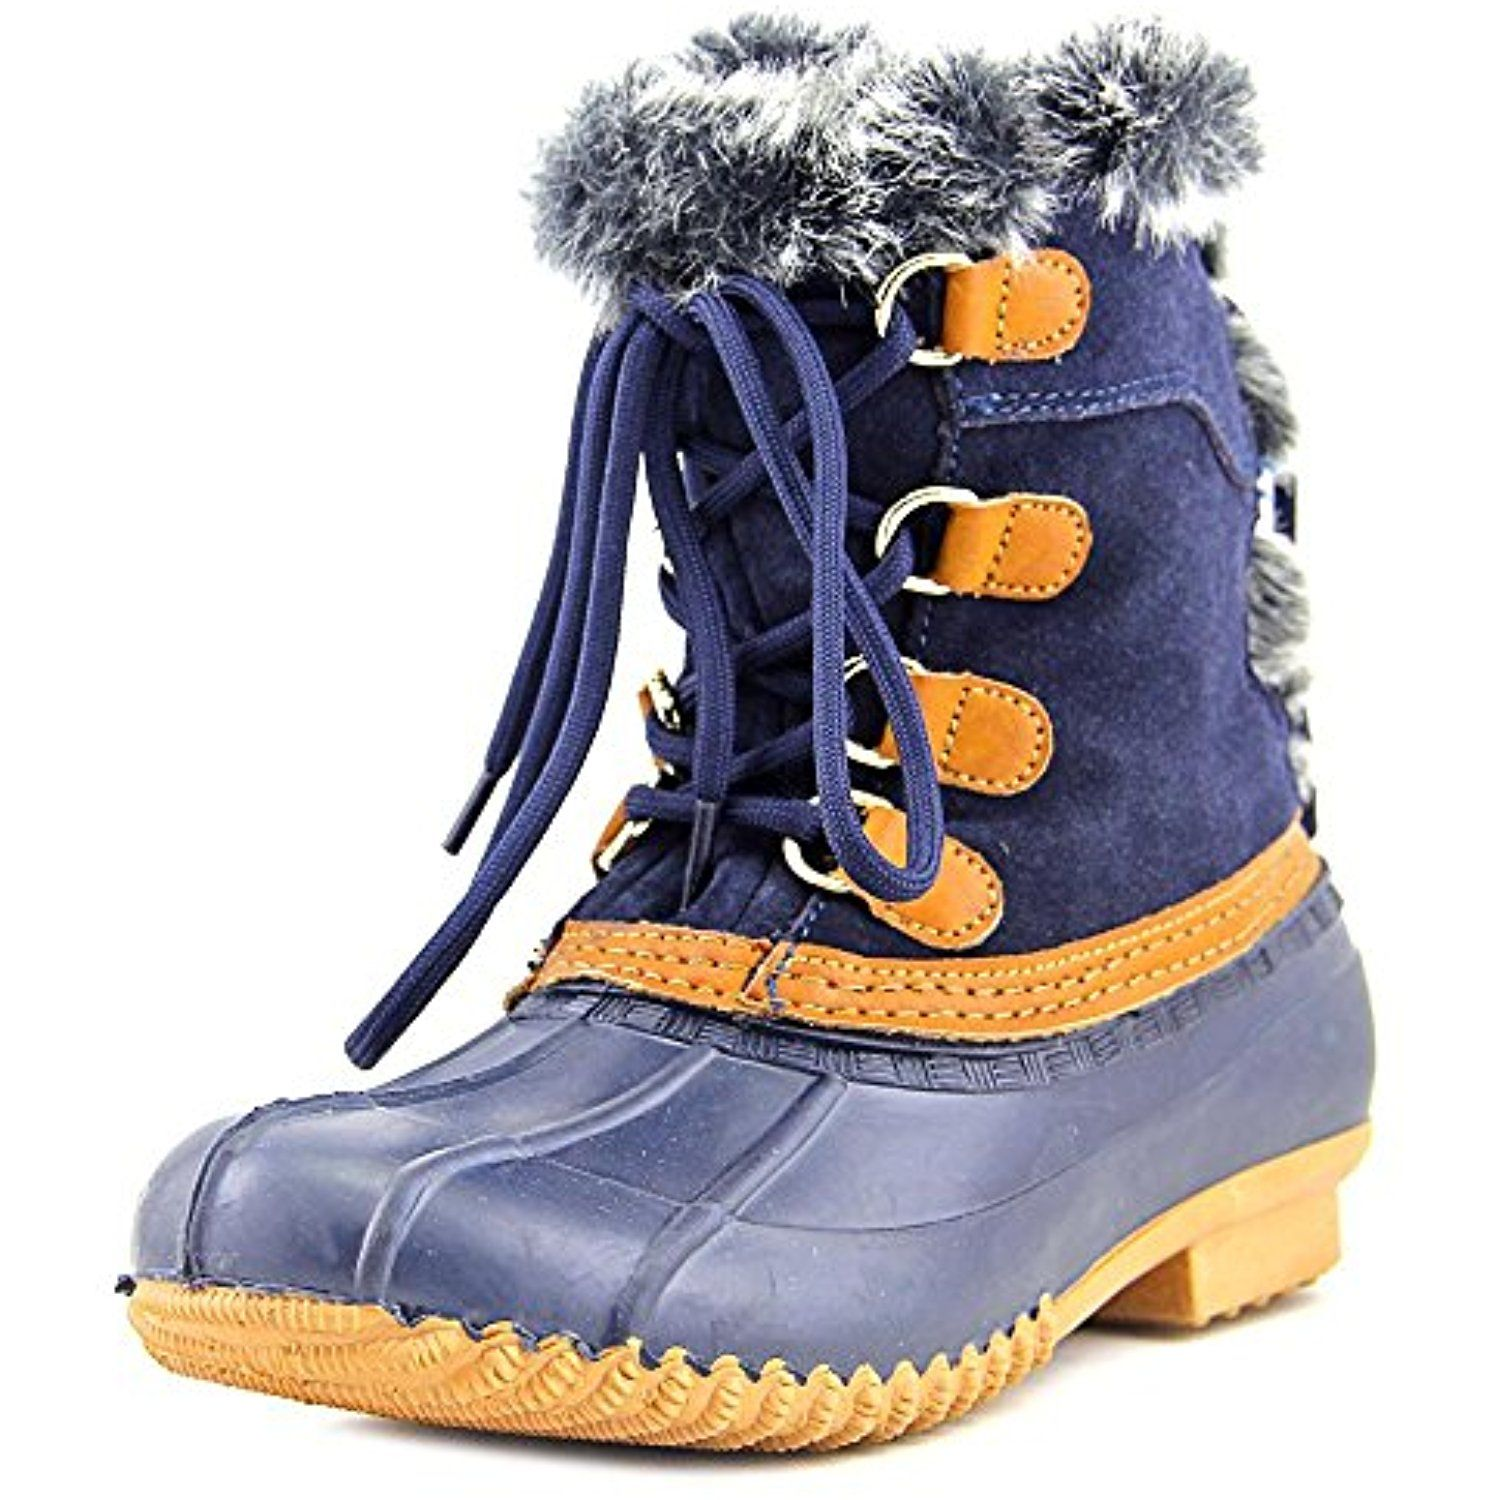 Rellenna Round Toe Suede Winter Boot You Can Find More Details By Visiting The Image Link This Is An Affiliate Li Snow Boots Women Blue Winter Boots Boots